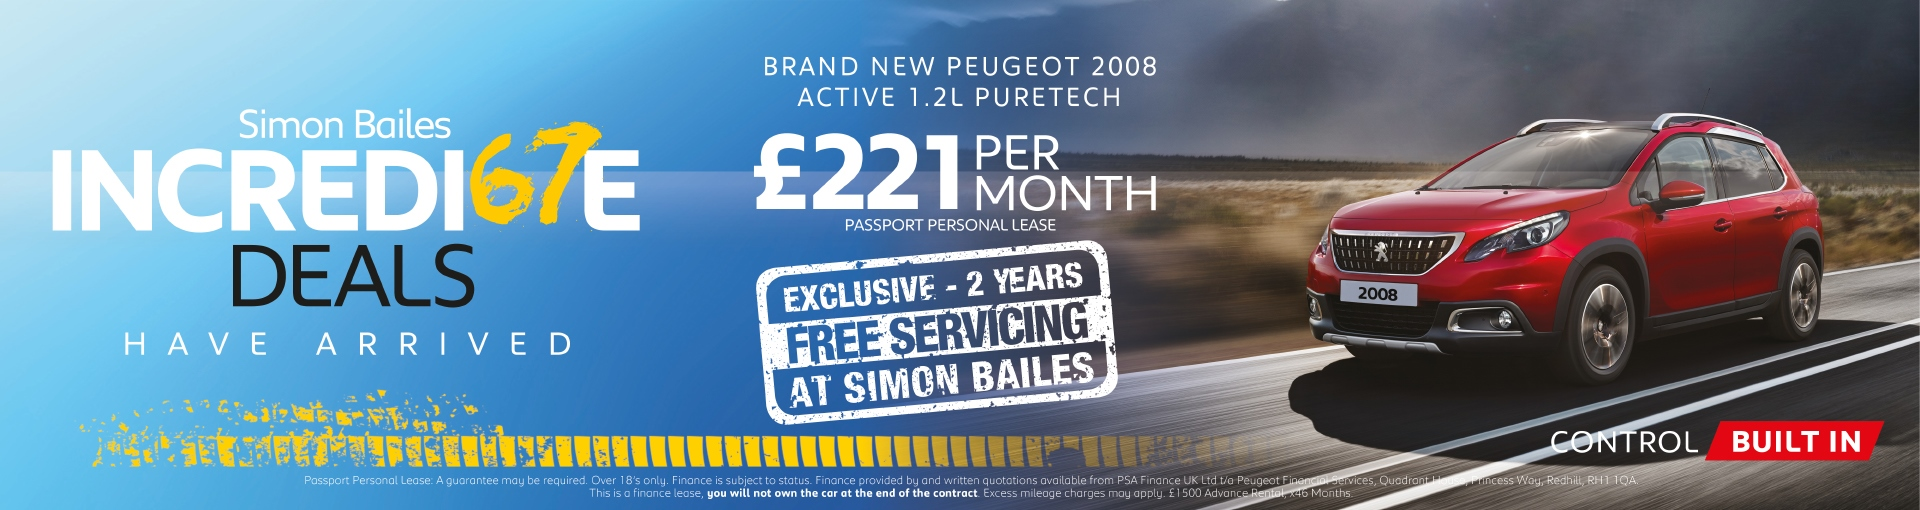 Peugeot 2008 SUV - £221 per month